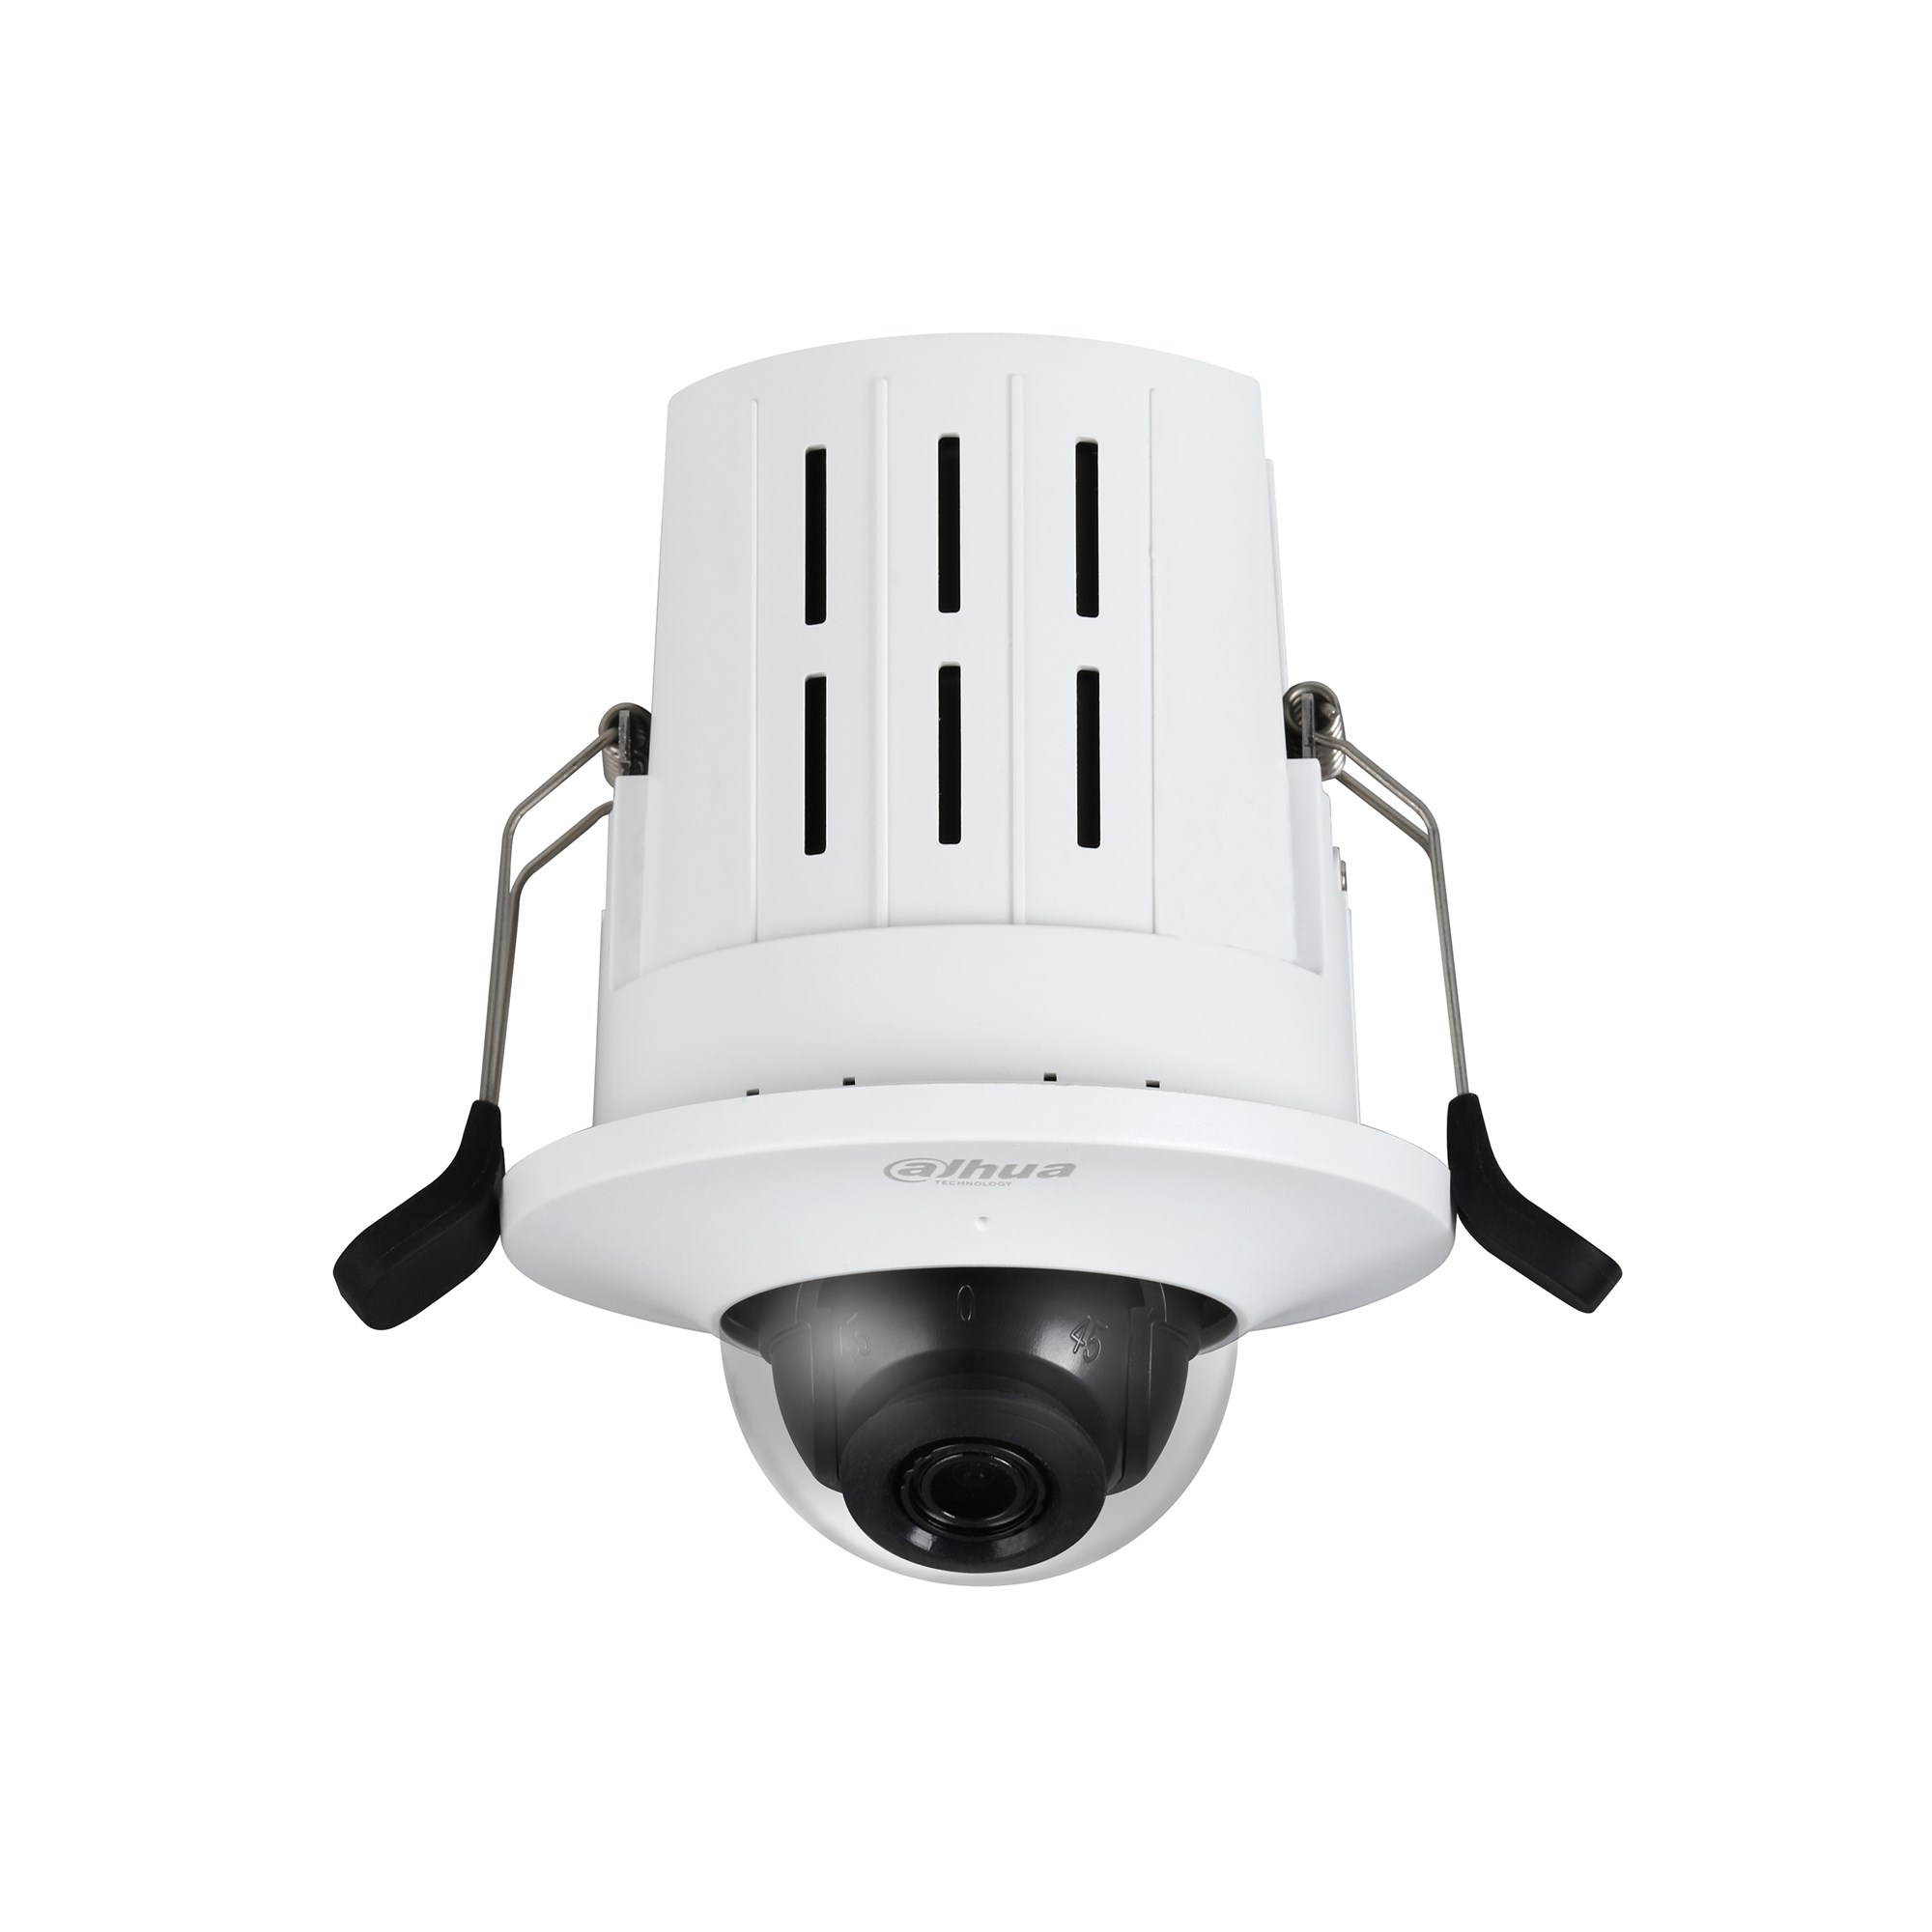 DH-IPC-HDB4231G-AS  2MP HD Recessed Mount Dome Network Camera